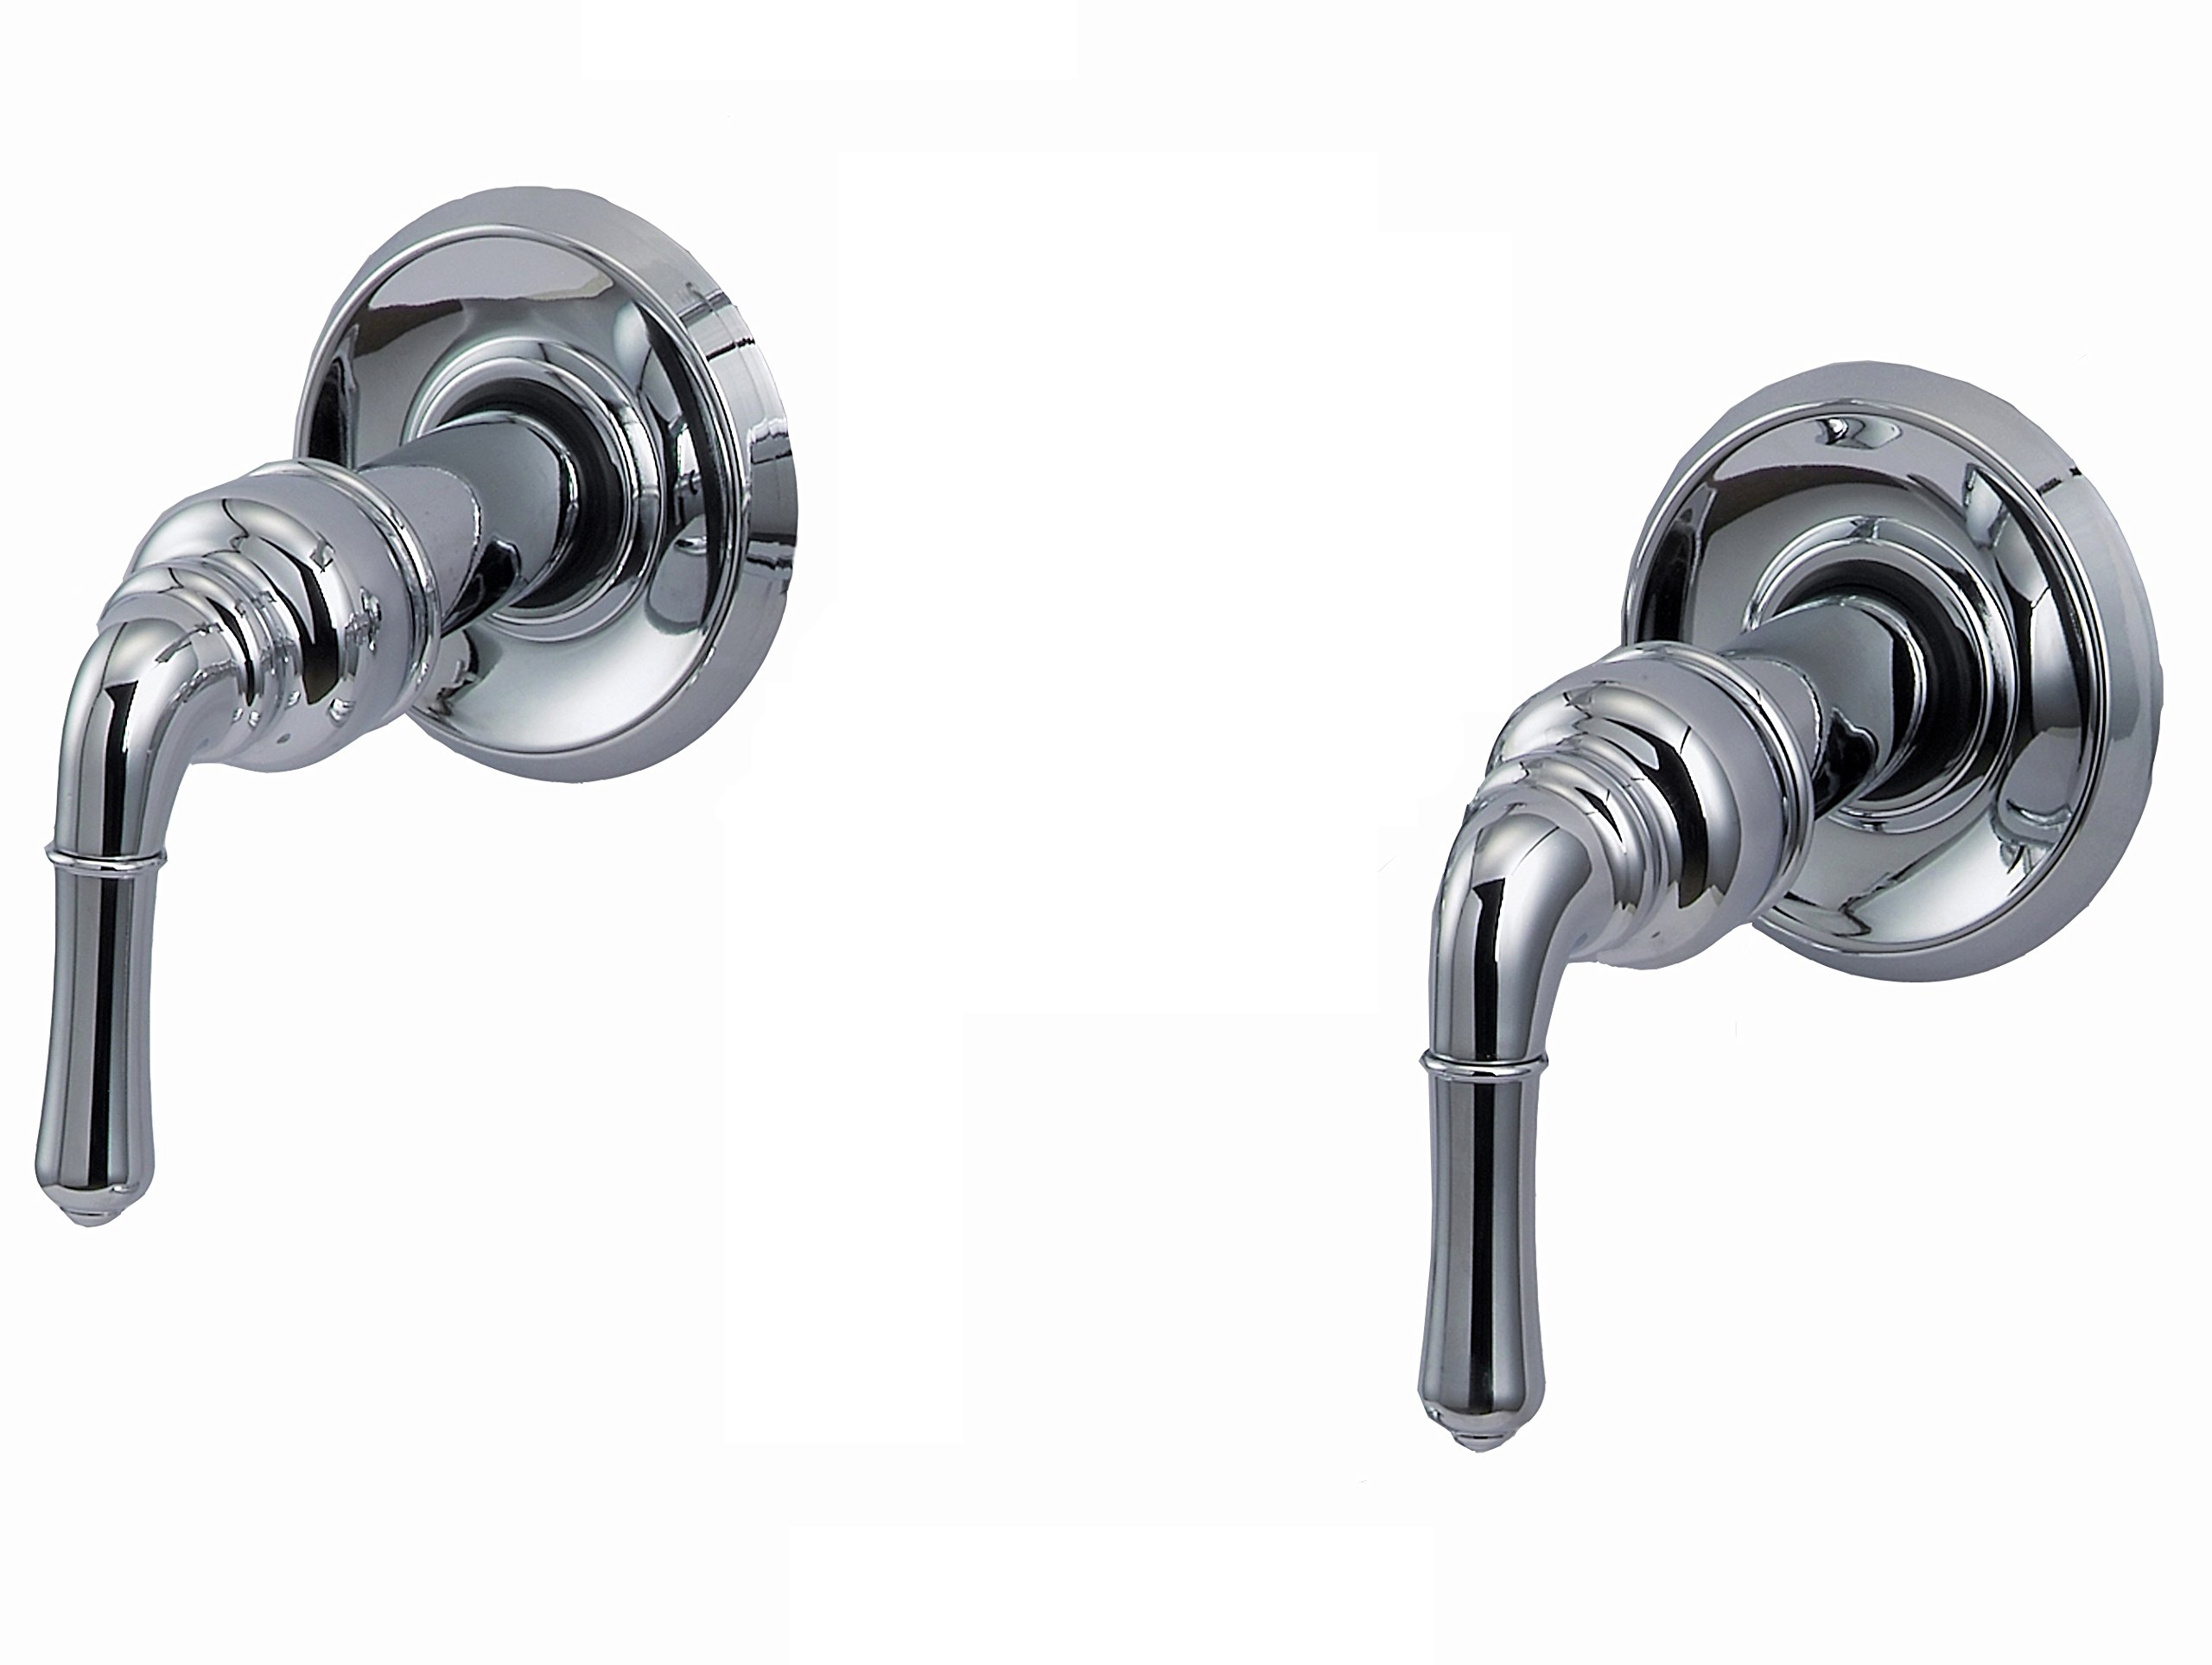 Trim Kit for 2-handle Shower Valve, Fit Delta Washerless Shower, Chrome Plated -By Plumb USA 38821 by PlumbUSA